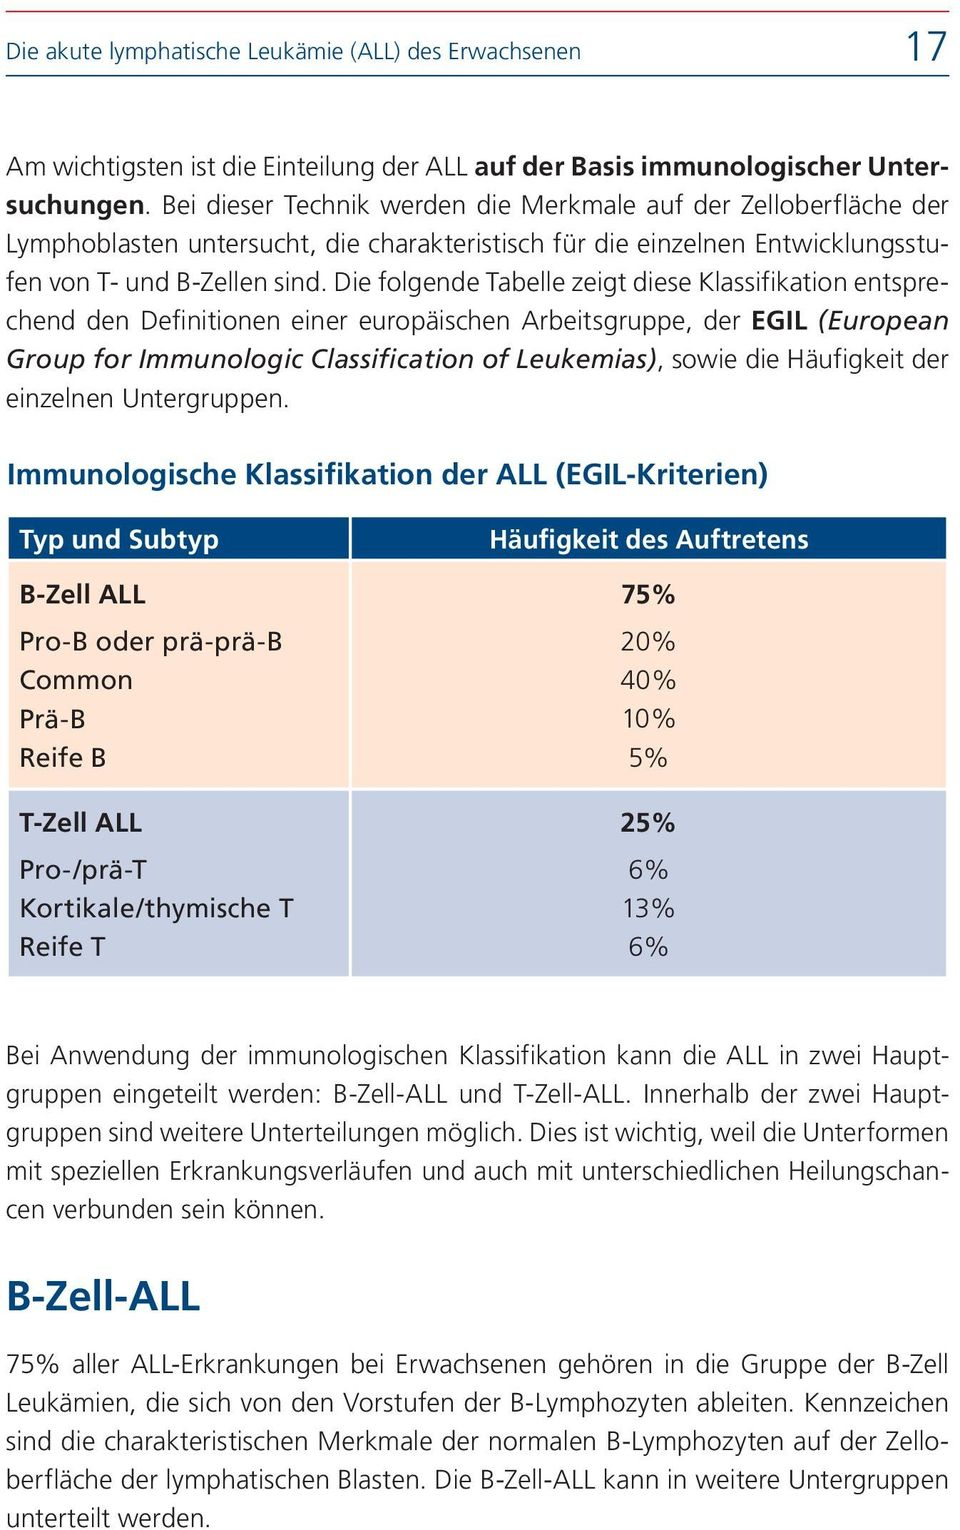 Die folgende Tabelle zeigt diese Klassifikation entsprechend den Definitionen einer europäischen Arbeitsgruppe, der EGIL (European Group for Immunologic Classification of Leukemias), sowie die